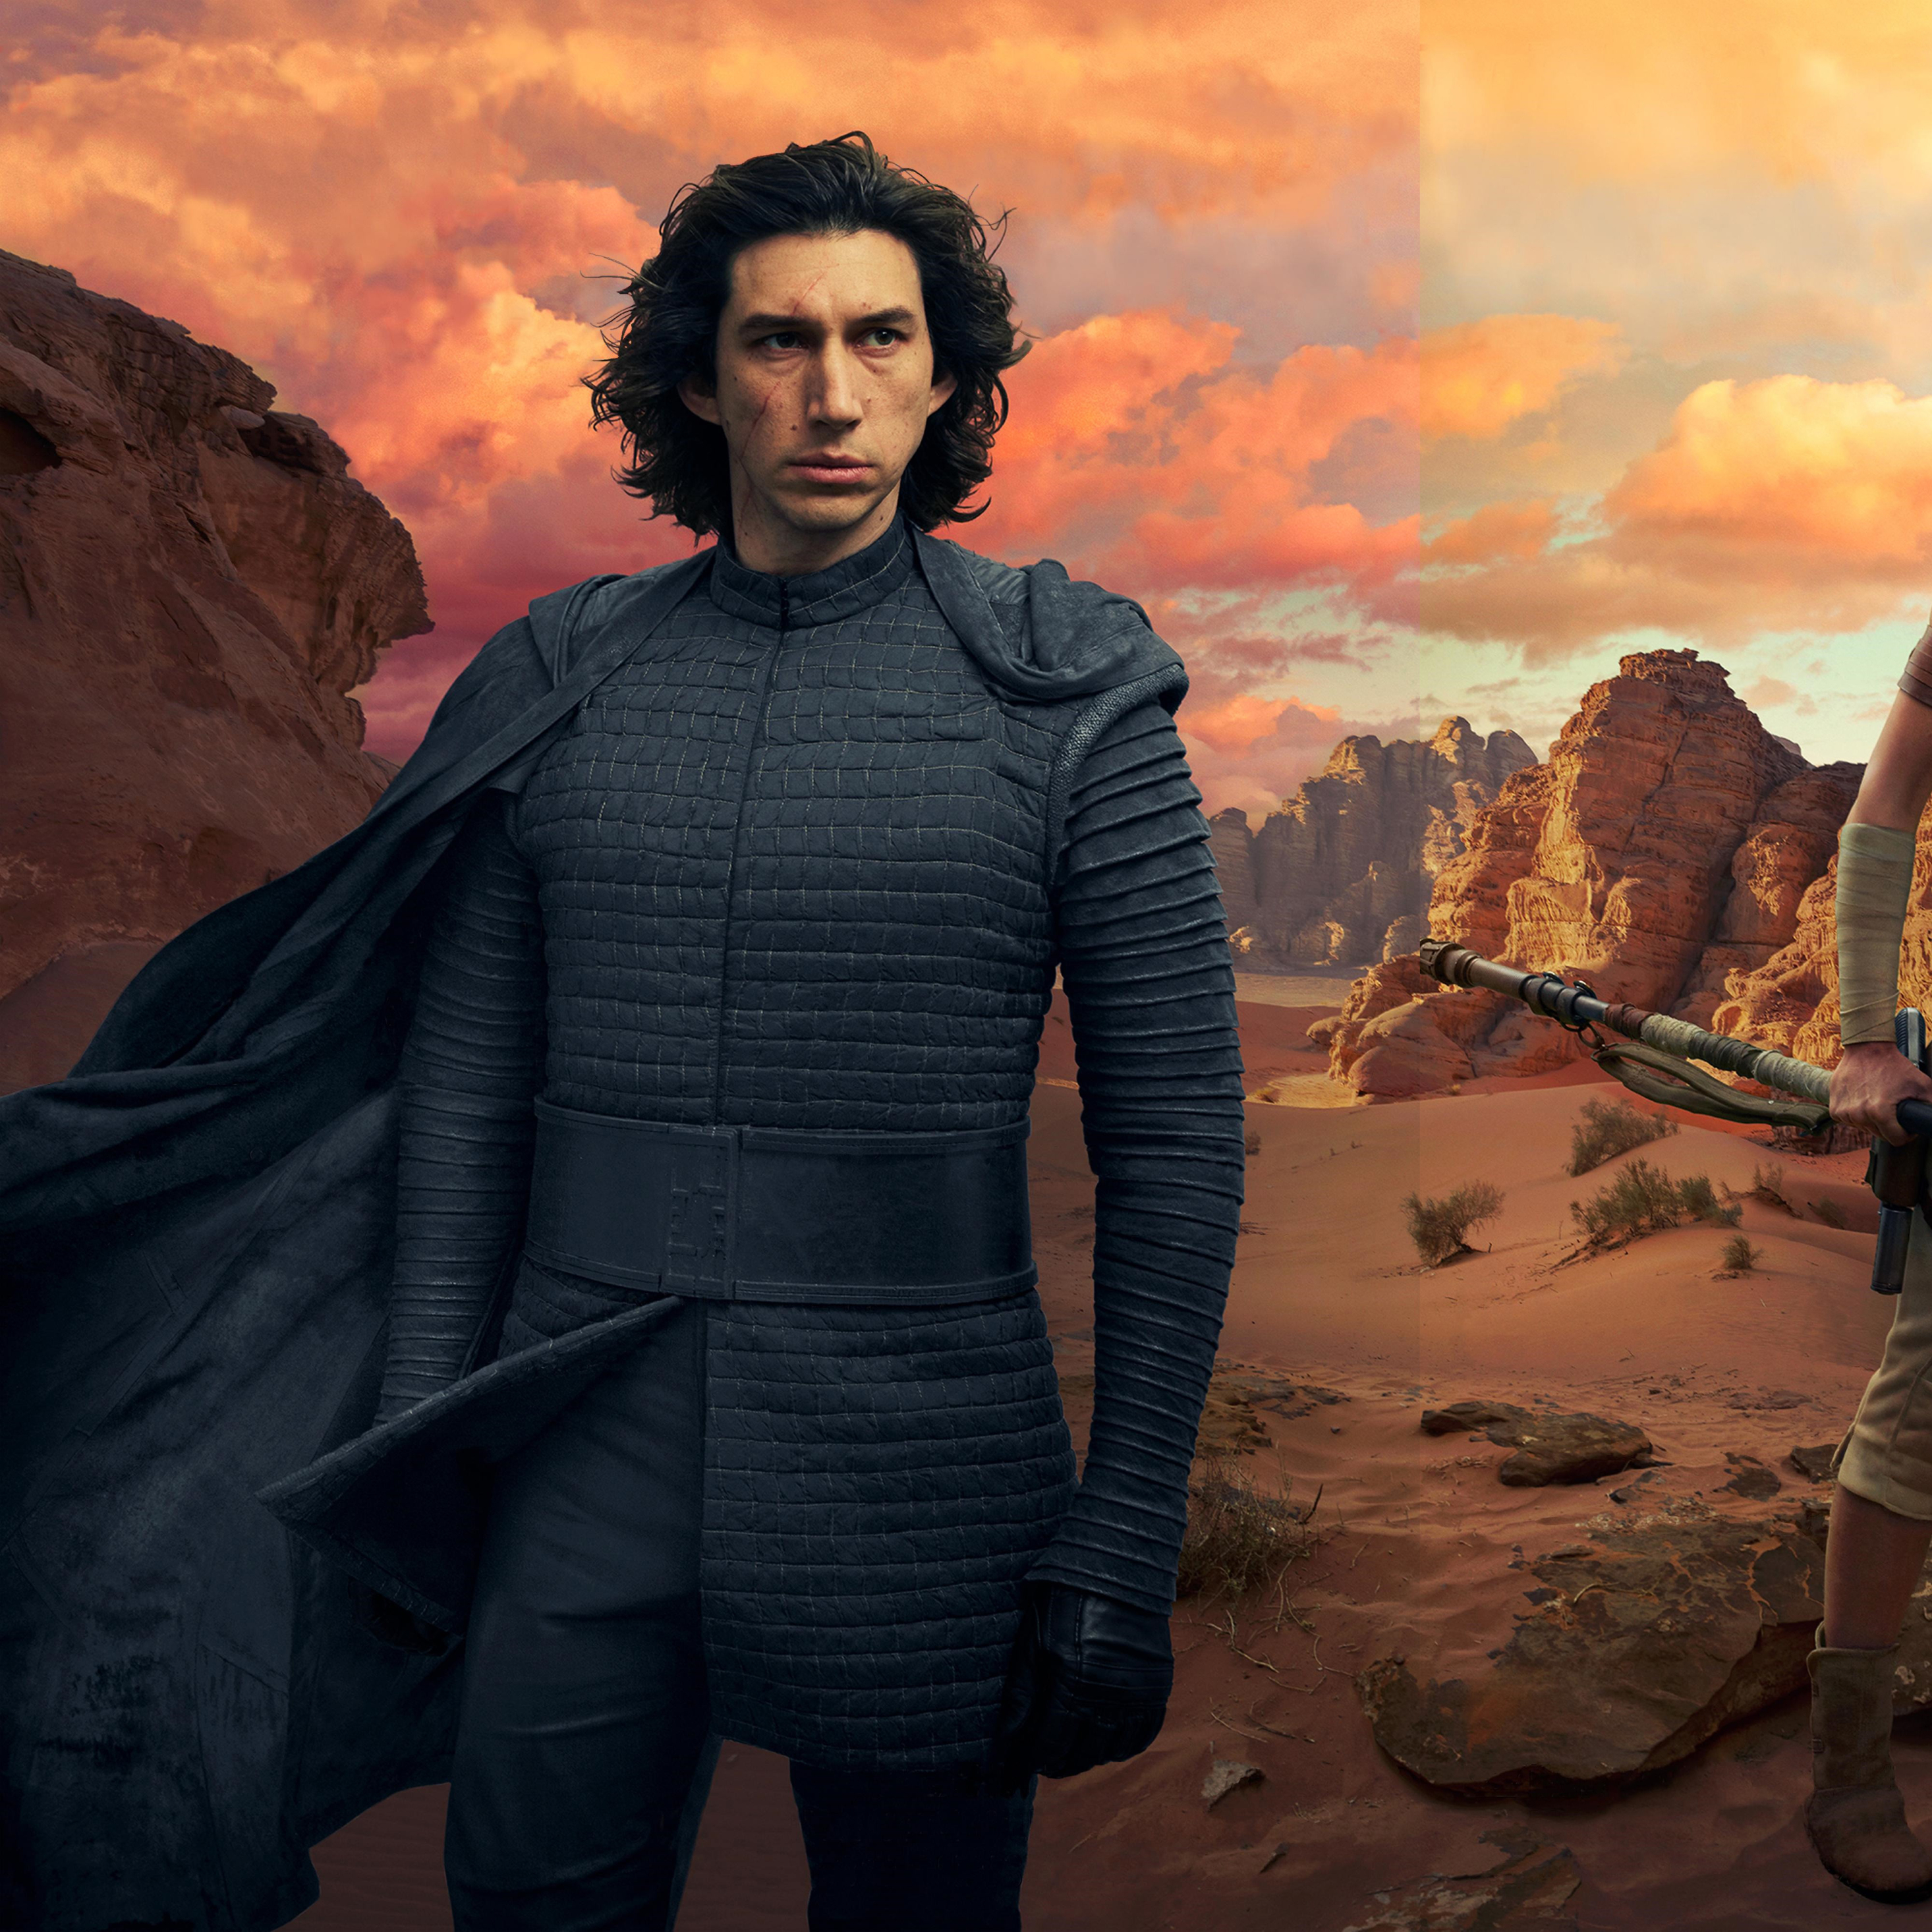 2932x2932 Kylo Ren And Rey In Star Wars The Rise Of Skywalker Ipad Pro Retina Display Wallpaper Hd Movies 4k Wallpapers Images Photos And Background